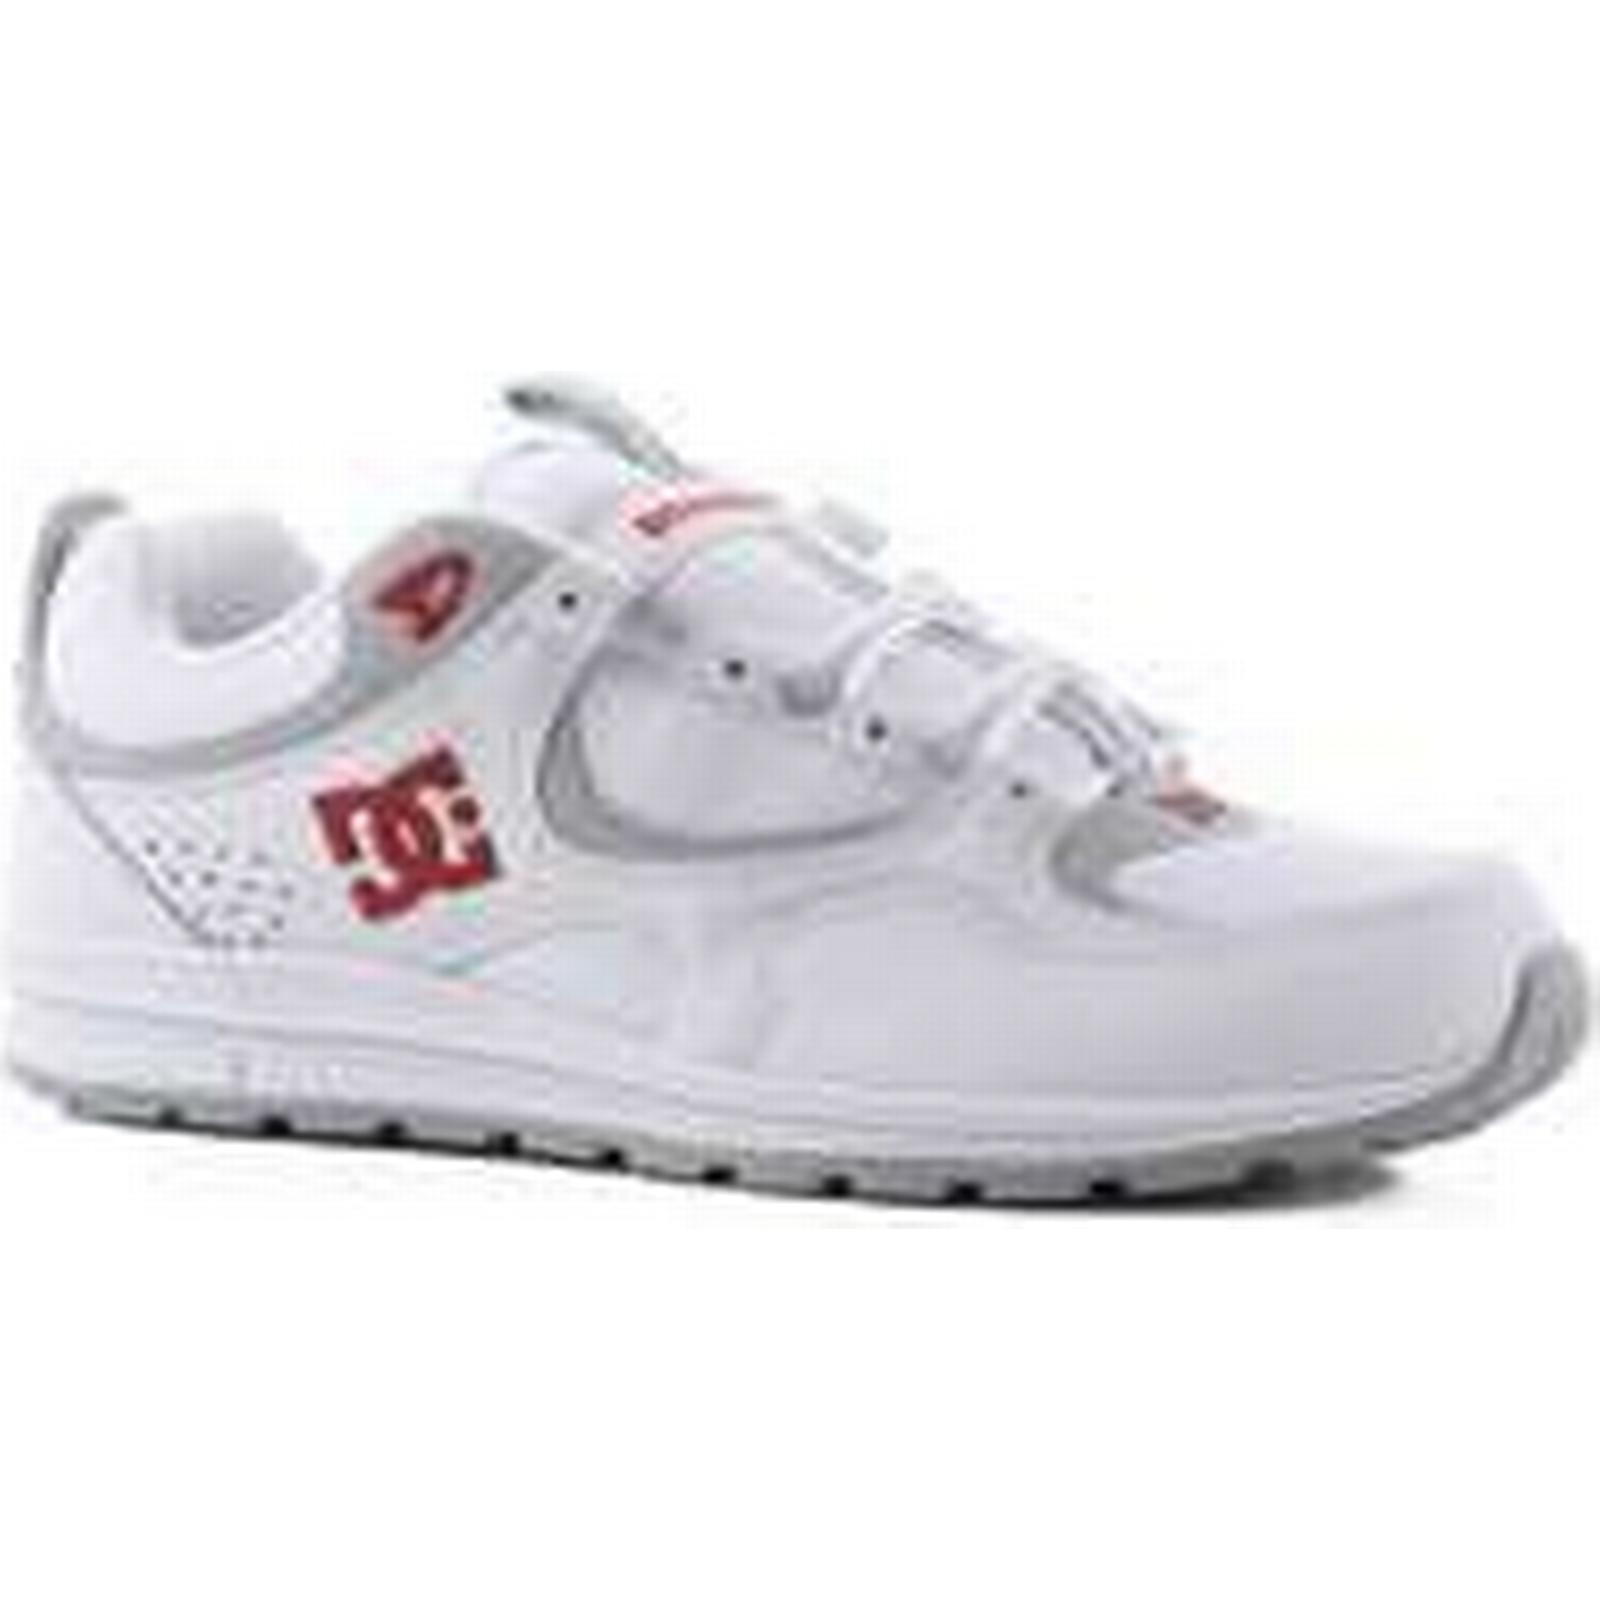 DC Shoes white/red Kalis Lite Skate Shoes white/red Shoes 359f32